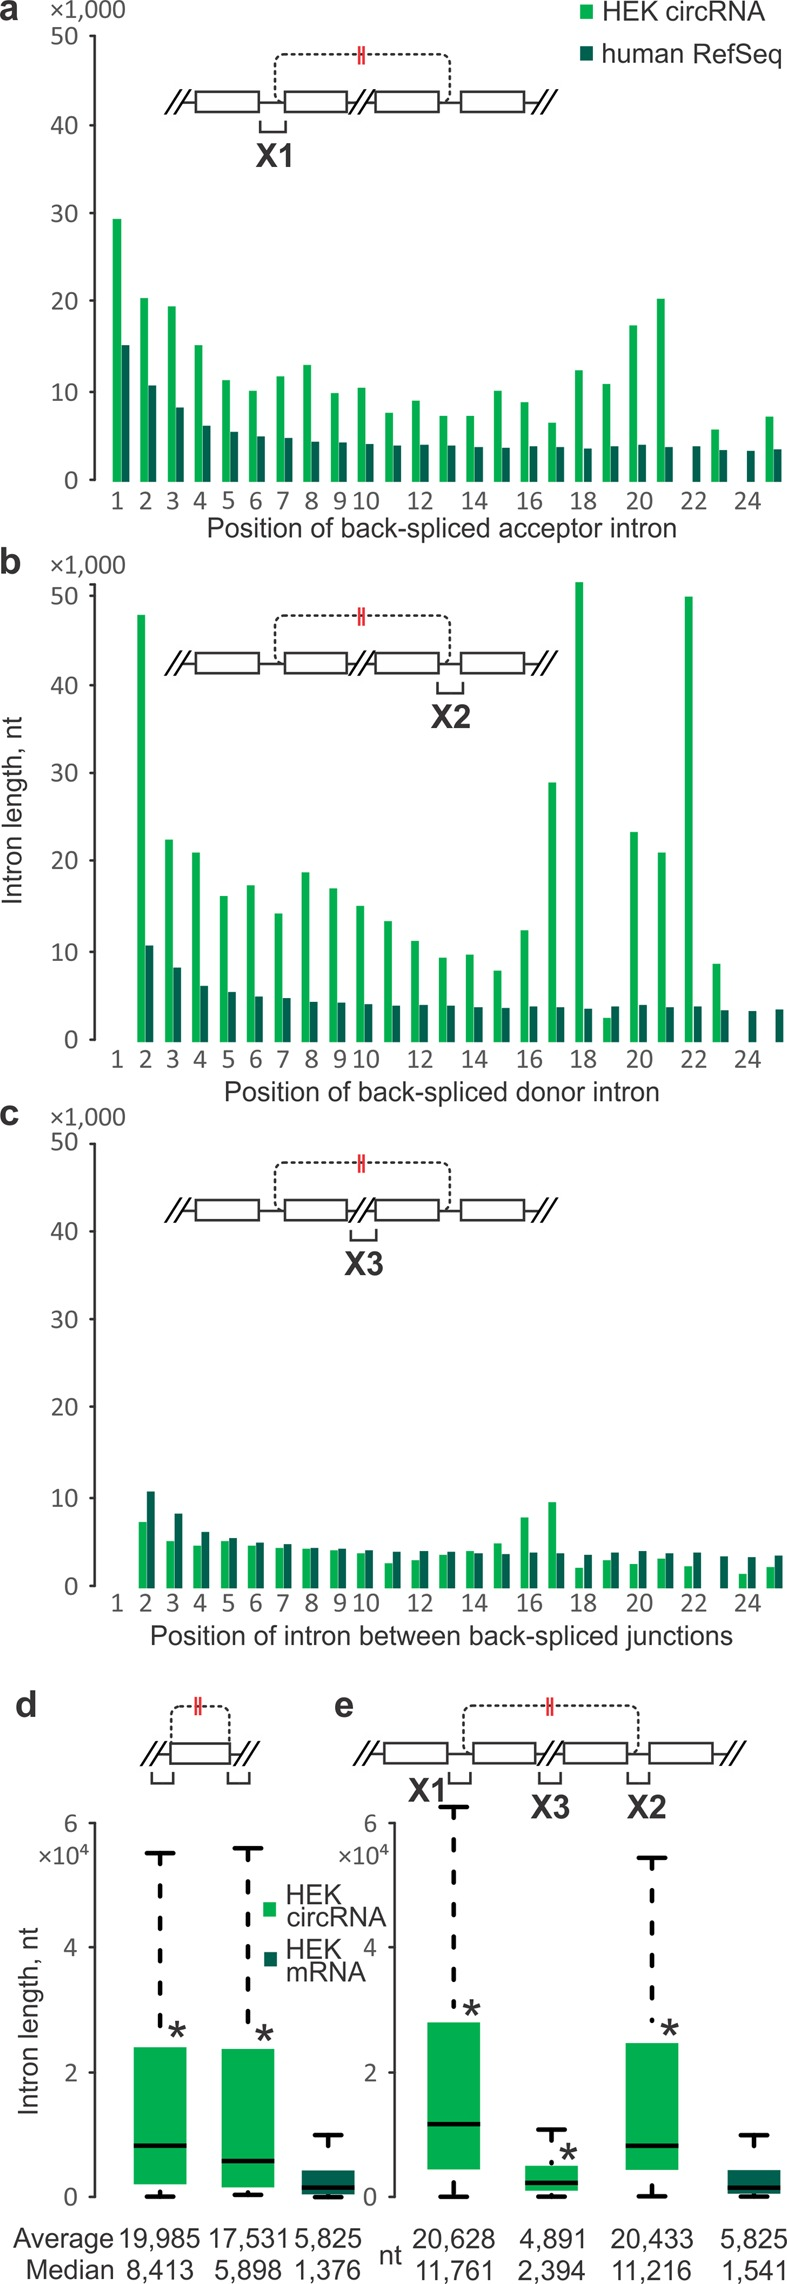 Intron lengths at human HEK 293 cell circRNA loci. Introns from circRNA-producing genes (green) are compared to RefSeq averages in the corresponding linear ordinal positions (dark green). ( a ) Average intron lengths at the upstream flank of back-spliced acceptor exons. ( b ) Same as ( a ), but for introns at the downstream flank of back-spliced donor exons. ( a , b ) Acceptor and donor introns of circRNA-producing genes are much longer than RefSeq genes in same ordinal positions and overall lengths of acceptor and donor introns were significantly longer than introns of RefSeq genes (measured by P-value